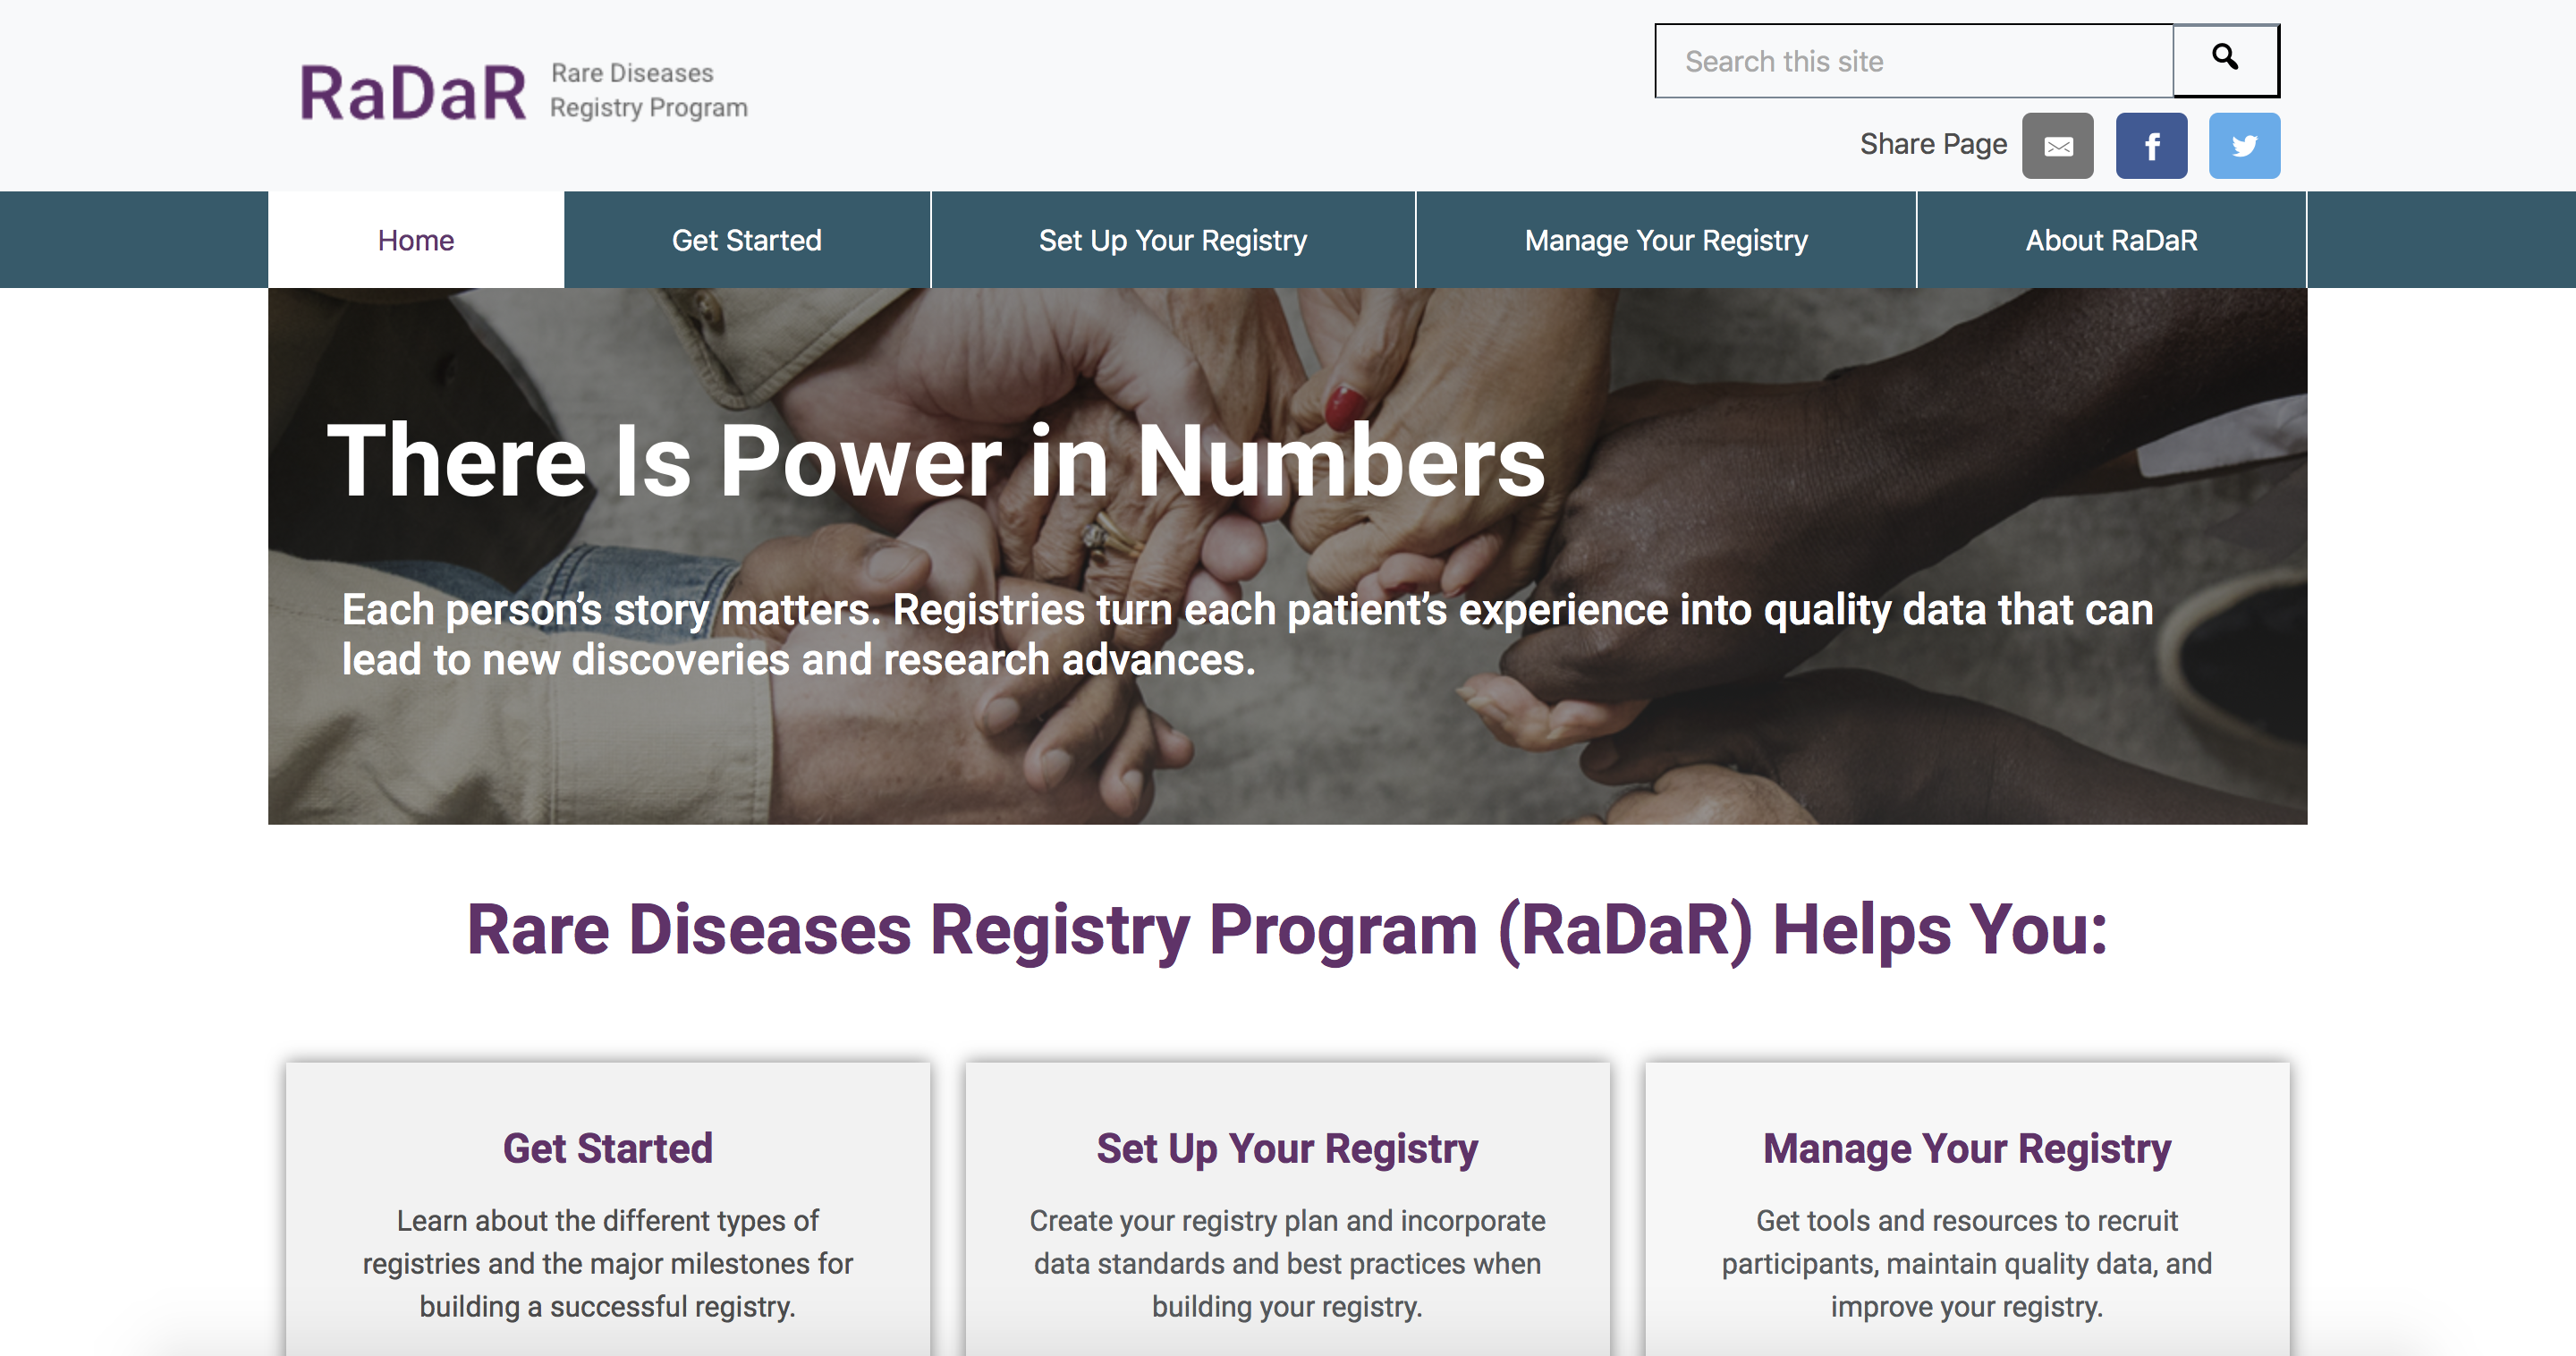 Rare Diseases Registry Program image